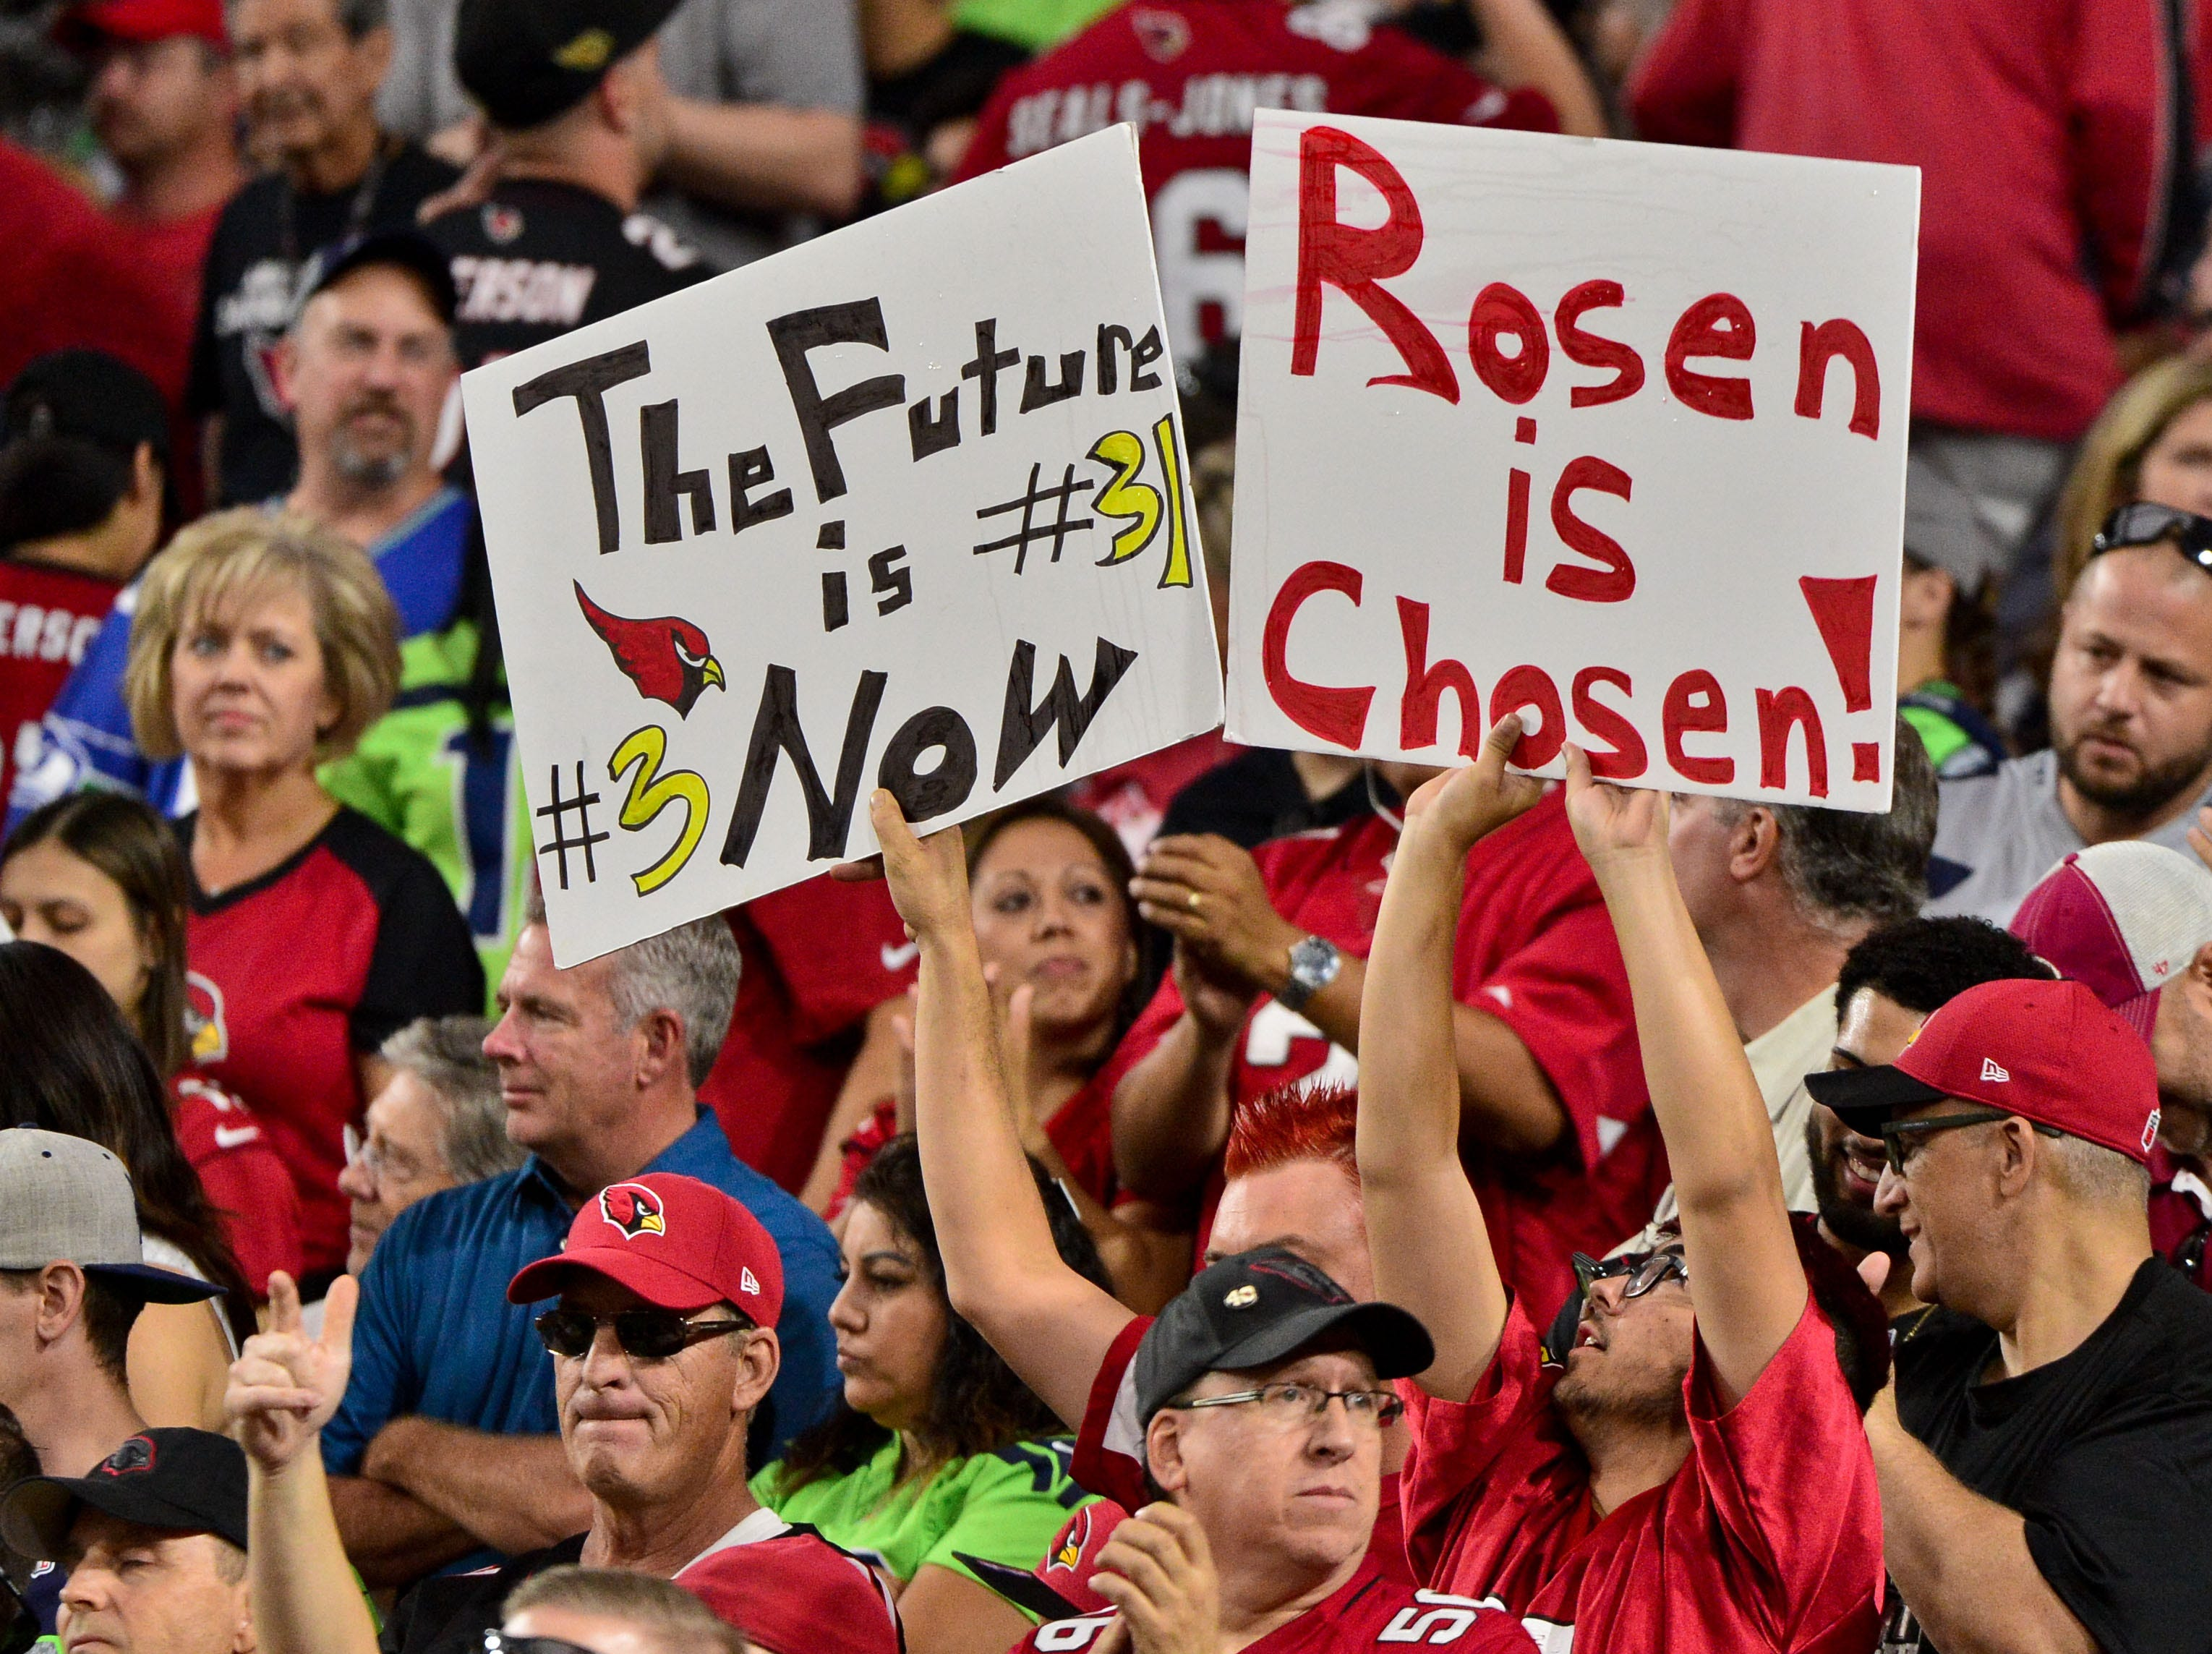 Fans hold signs in support of Arizona Cardinals quarterback Josh Rosen during the game against the Seattle Seahawks on Sept. 30, 2018 at State Farm Stadium.